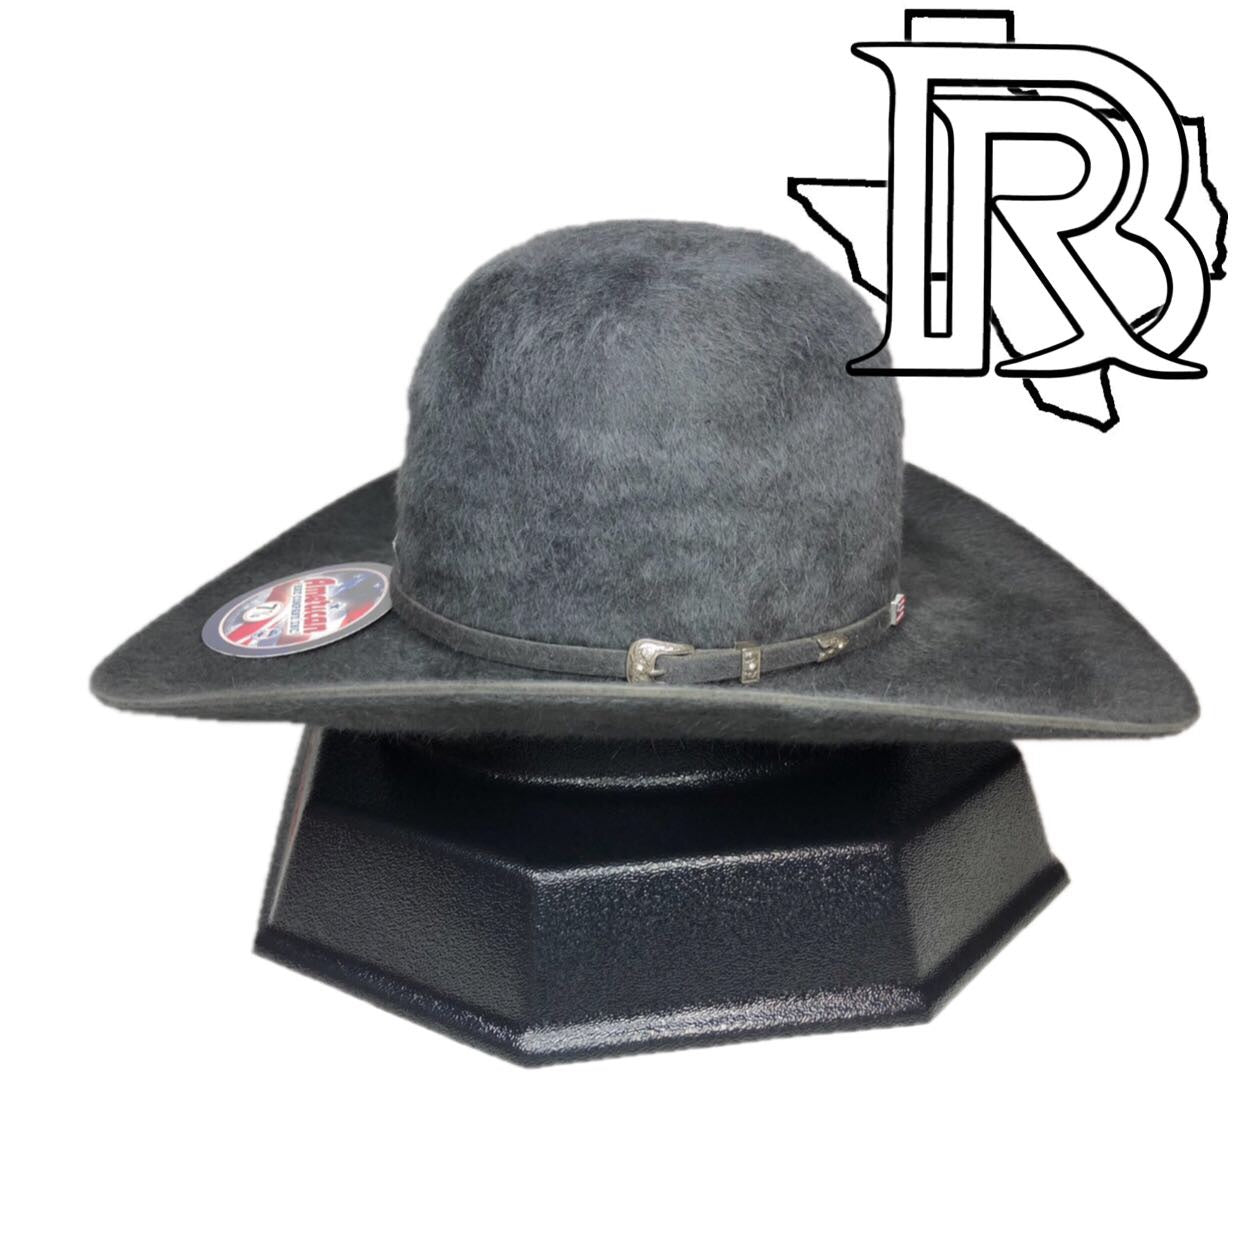 20x American Hat Grizzly Charcoal – Botas Rojero